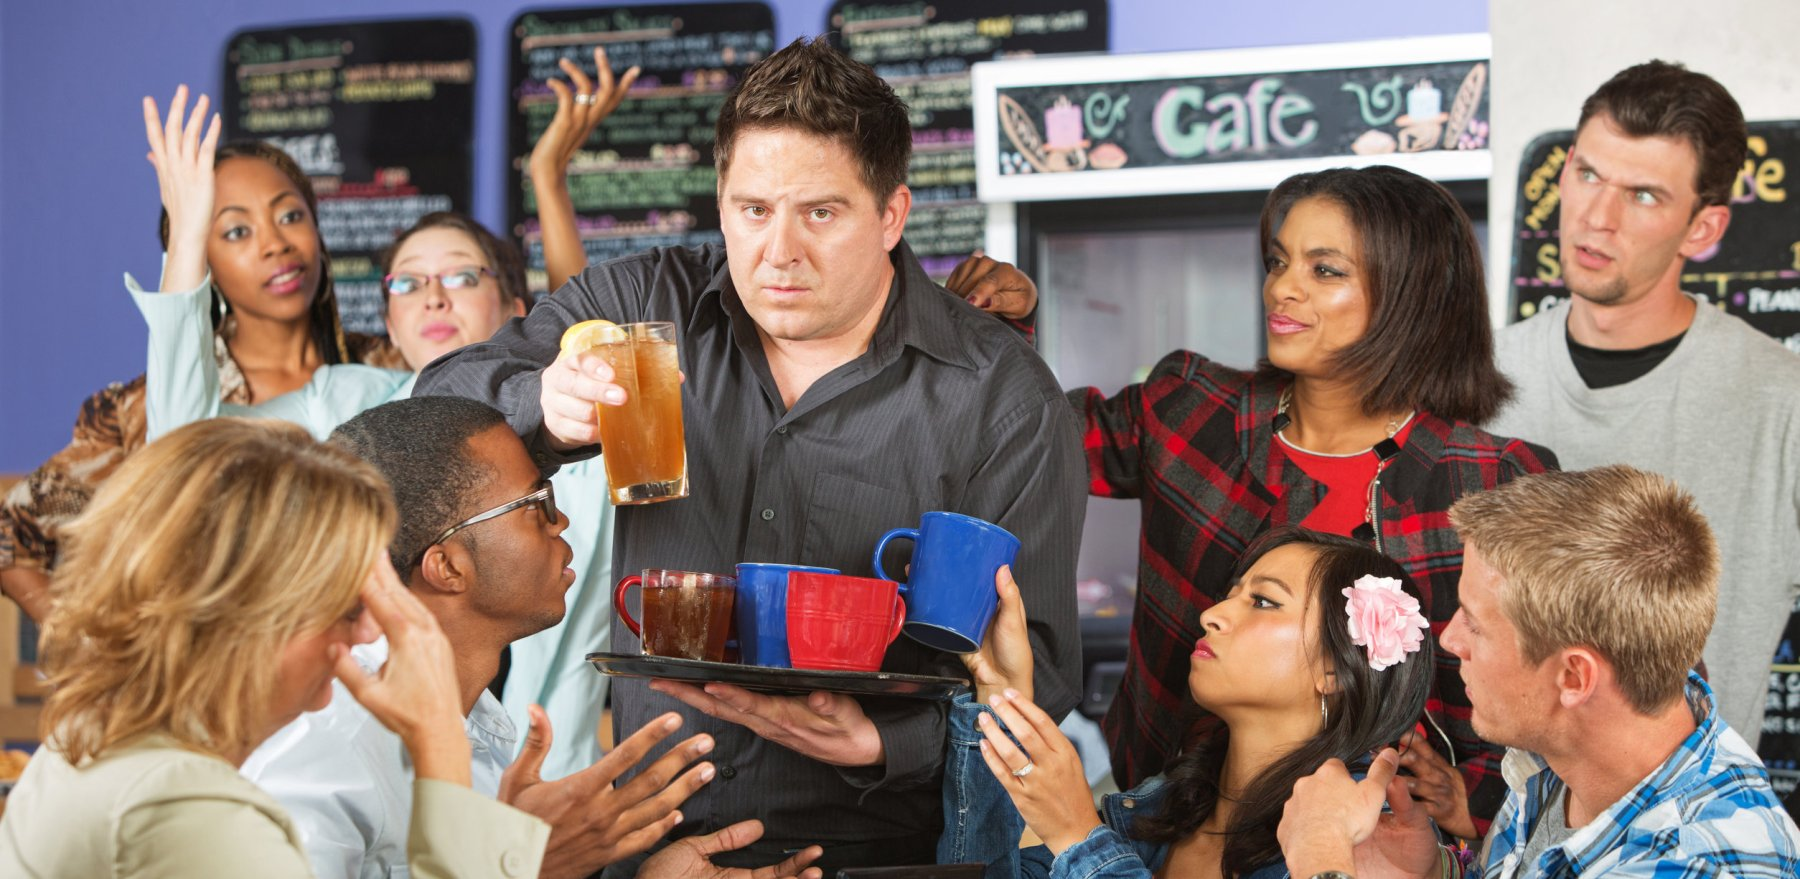 Stressed out restaurant waiter with group of angry customers